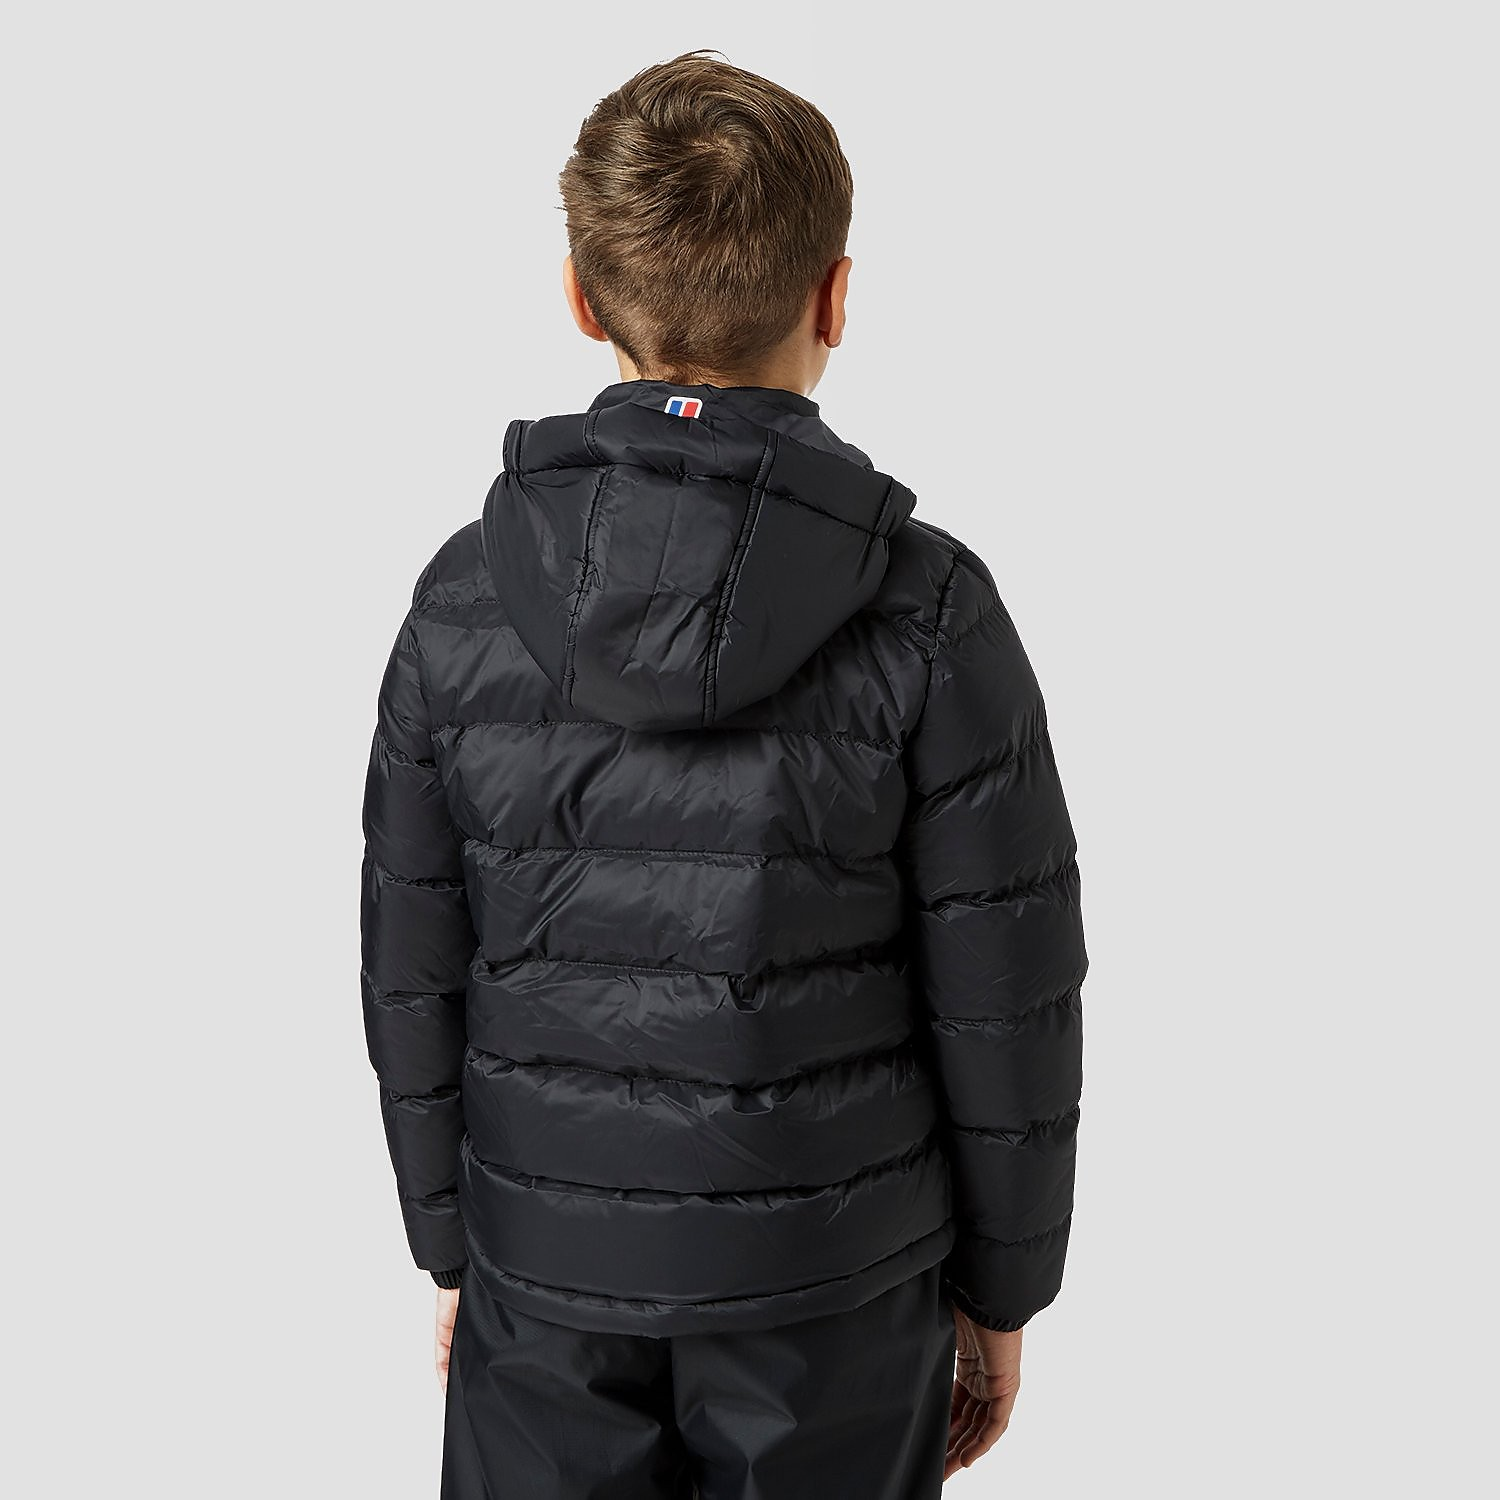 Berghaus Burham Insulated Boys Jacket